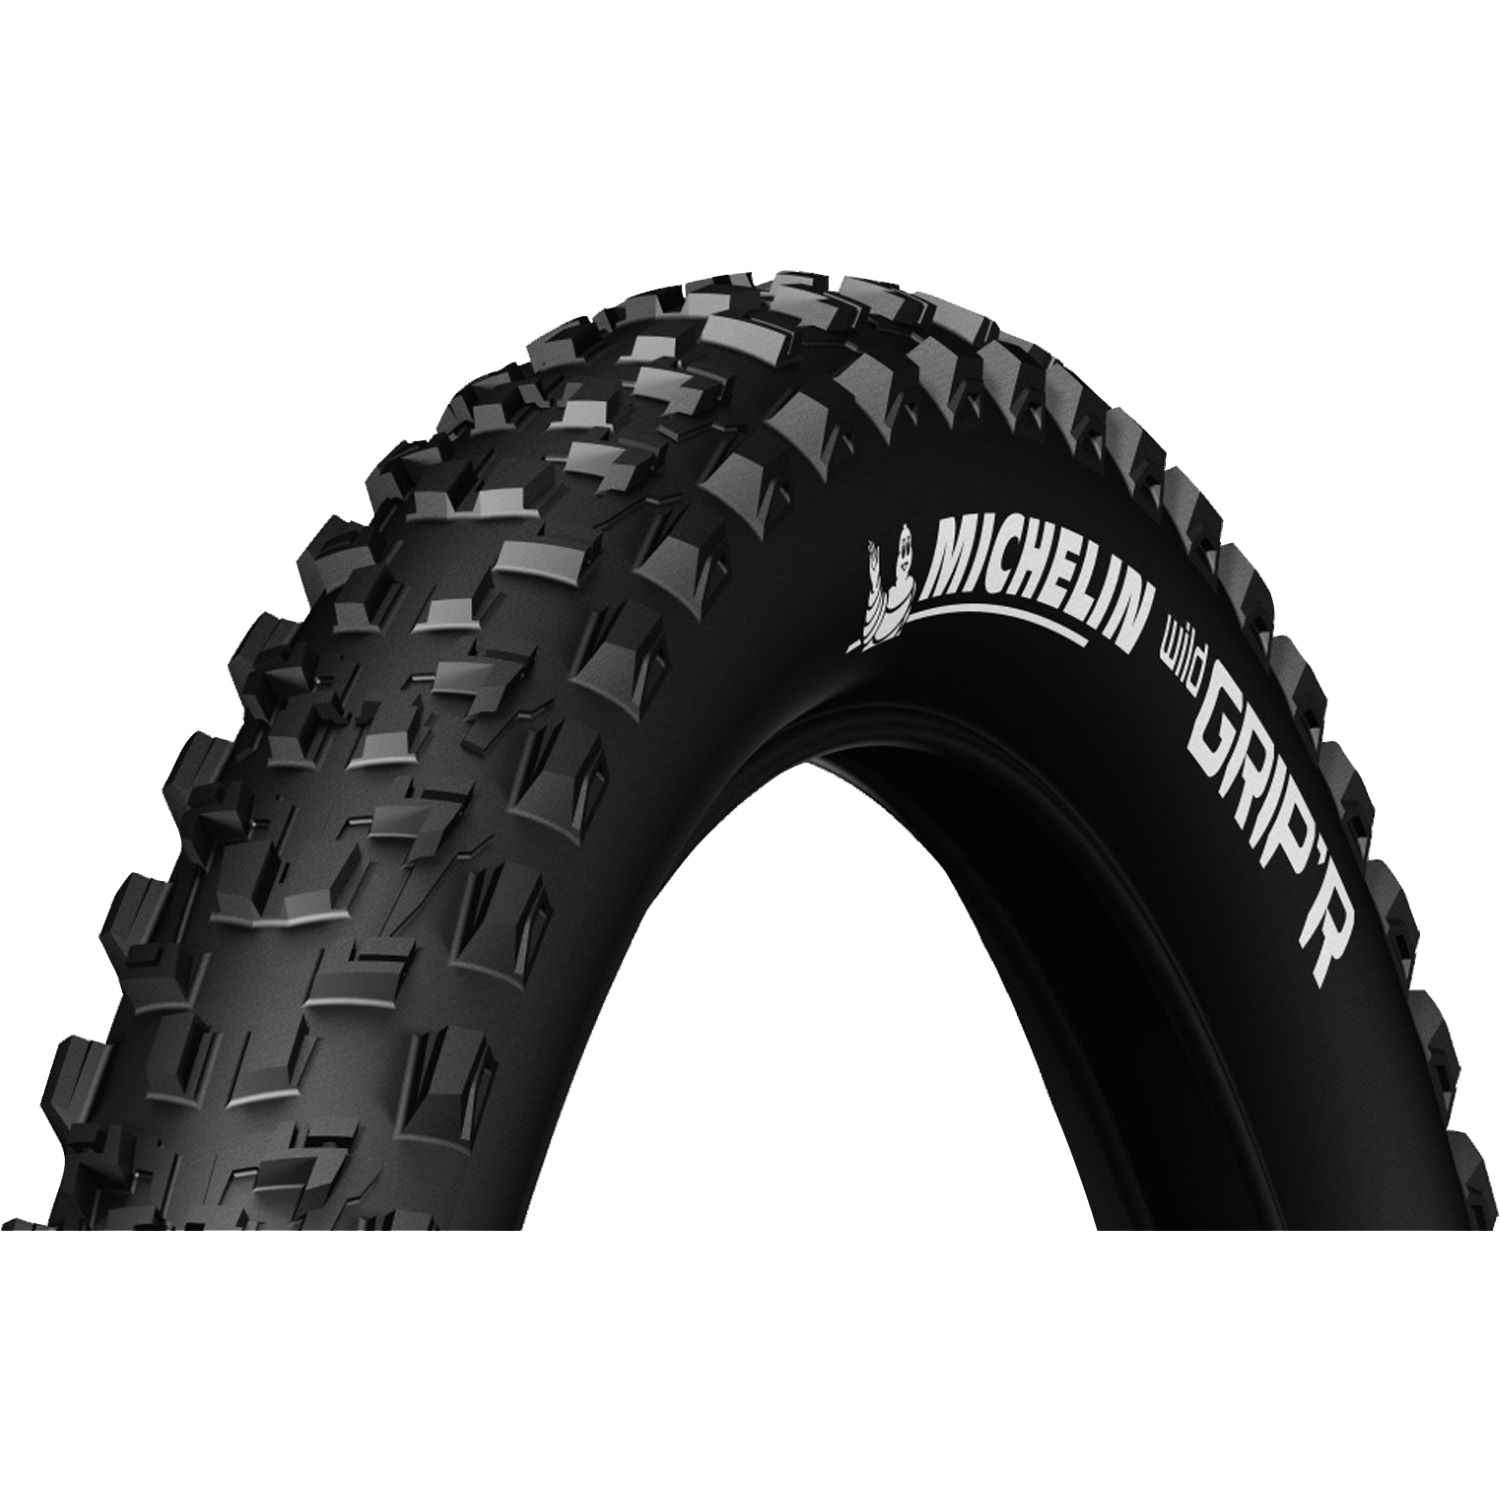 michelin wild grip 39 r advanced reinforced magi x 650b tyre mtb off road tires. Black Bedroom Furniture Sets. Home Design Ideas